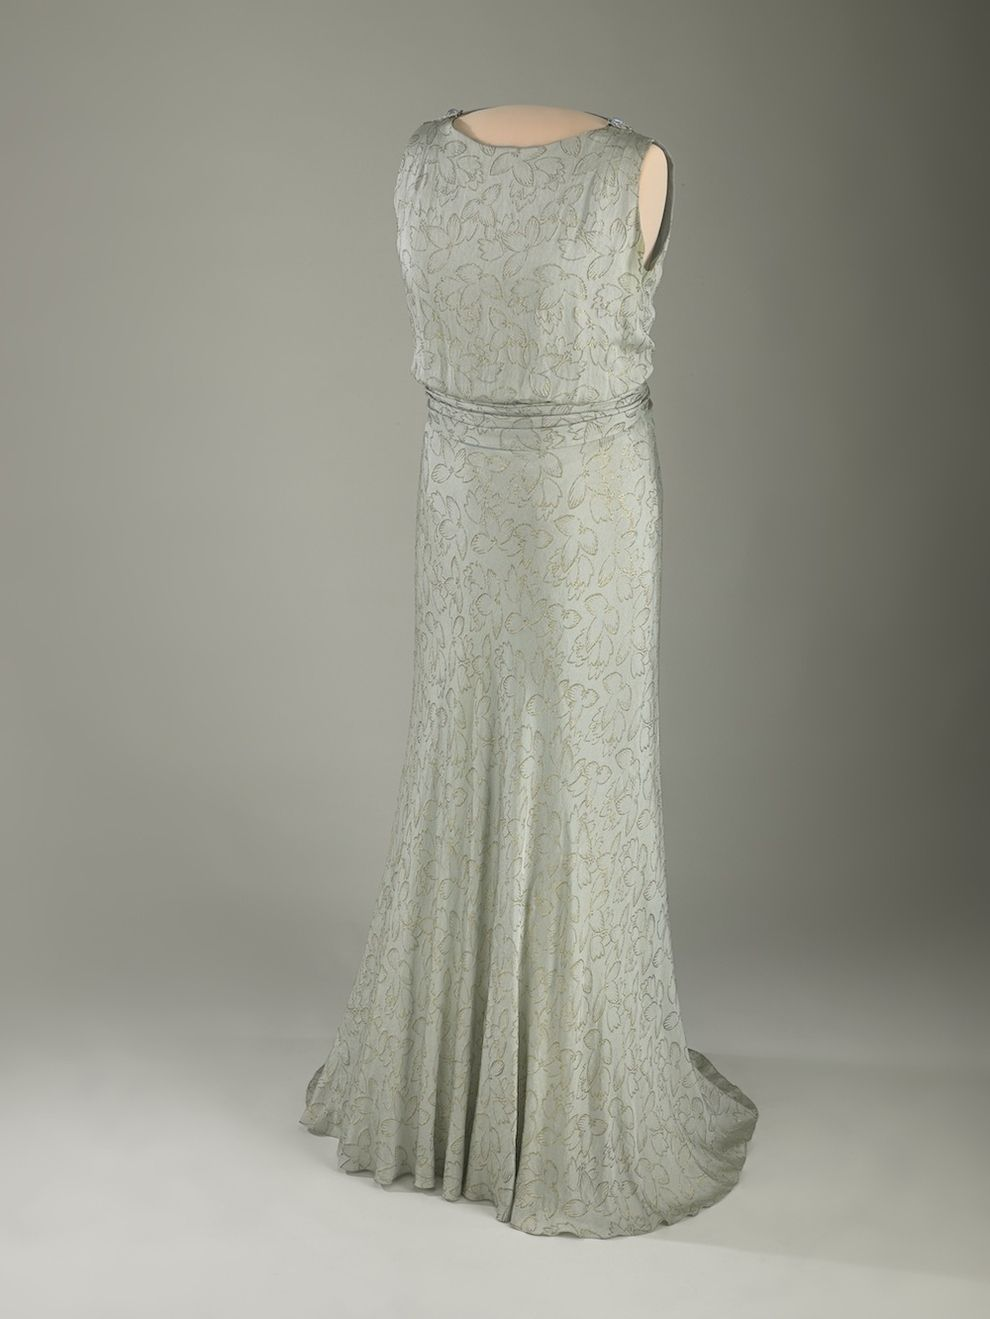 The inaugural gown of eleanor roosevelt national museum of